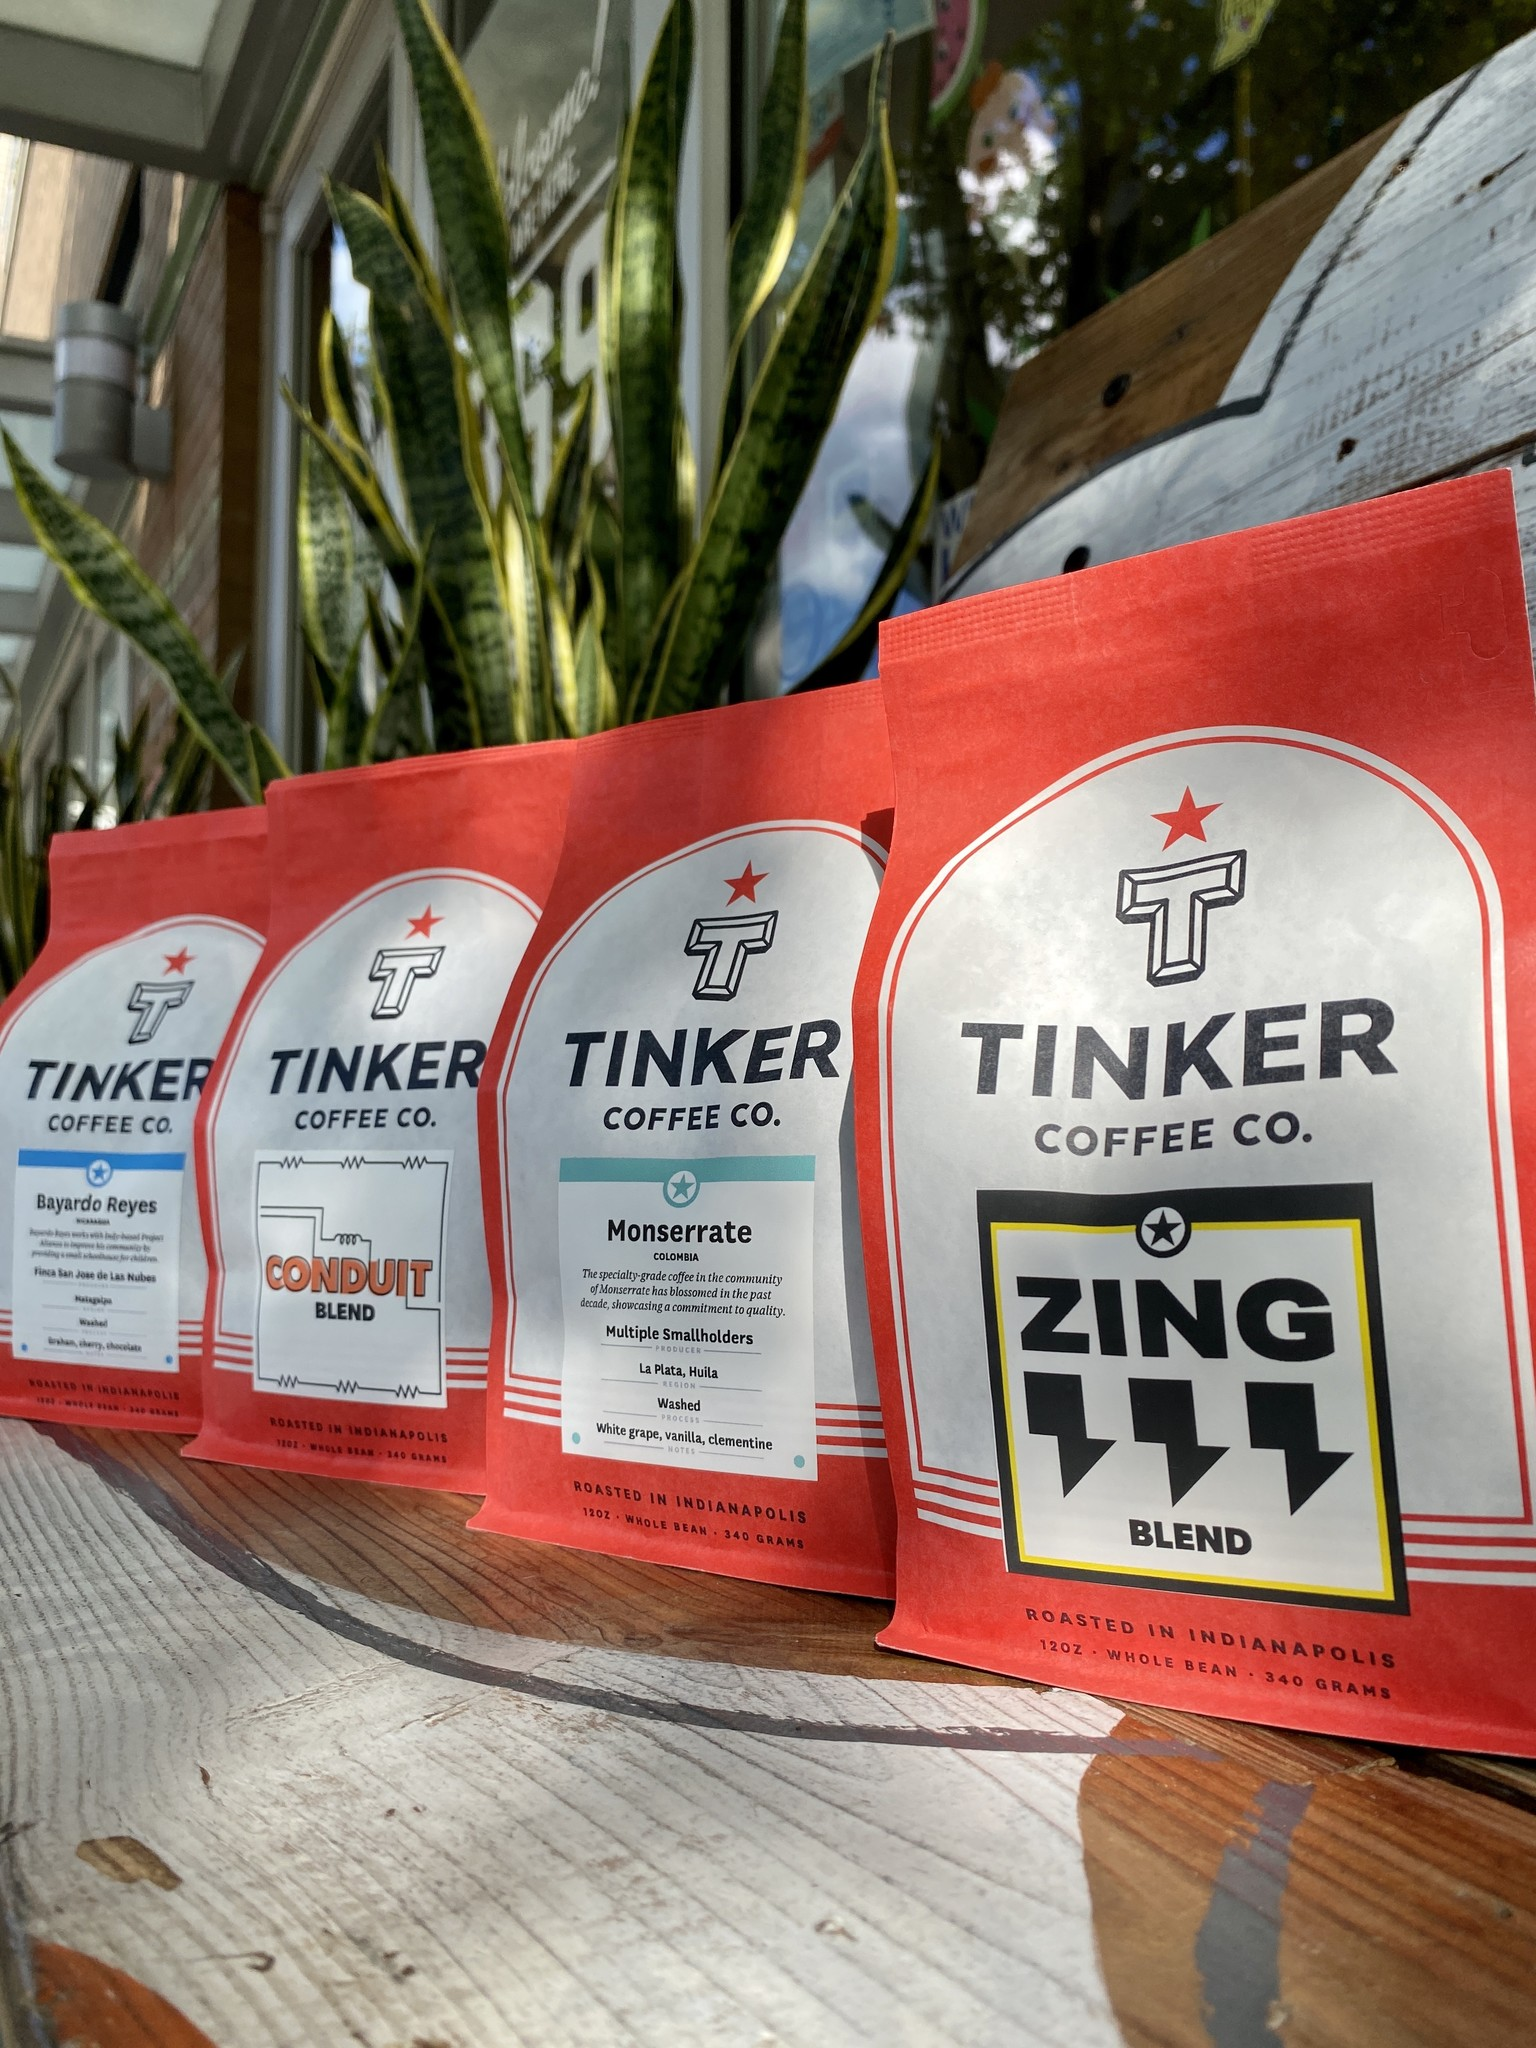 Tinker Coffee Co. Whole Bean Coffee 12oz. Bags